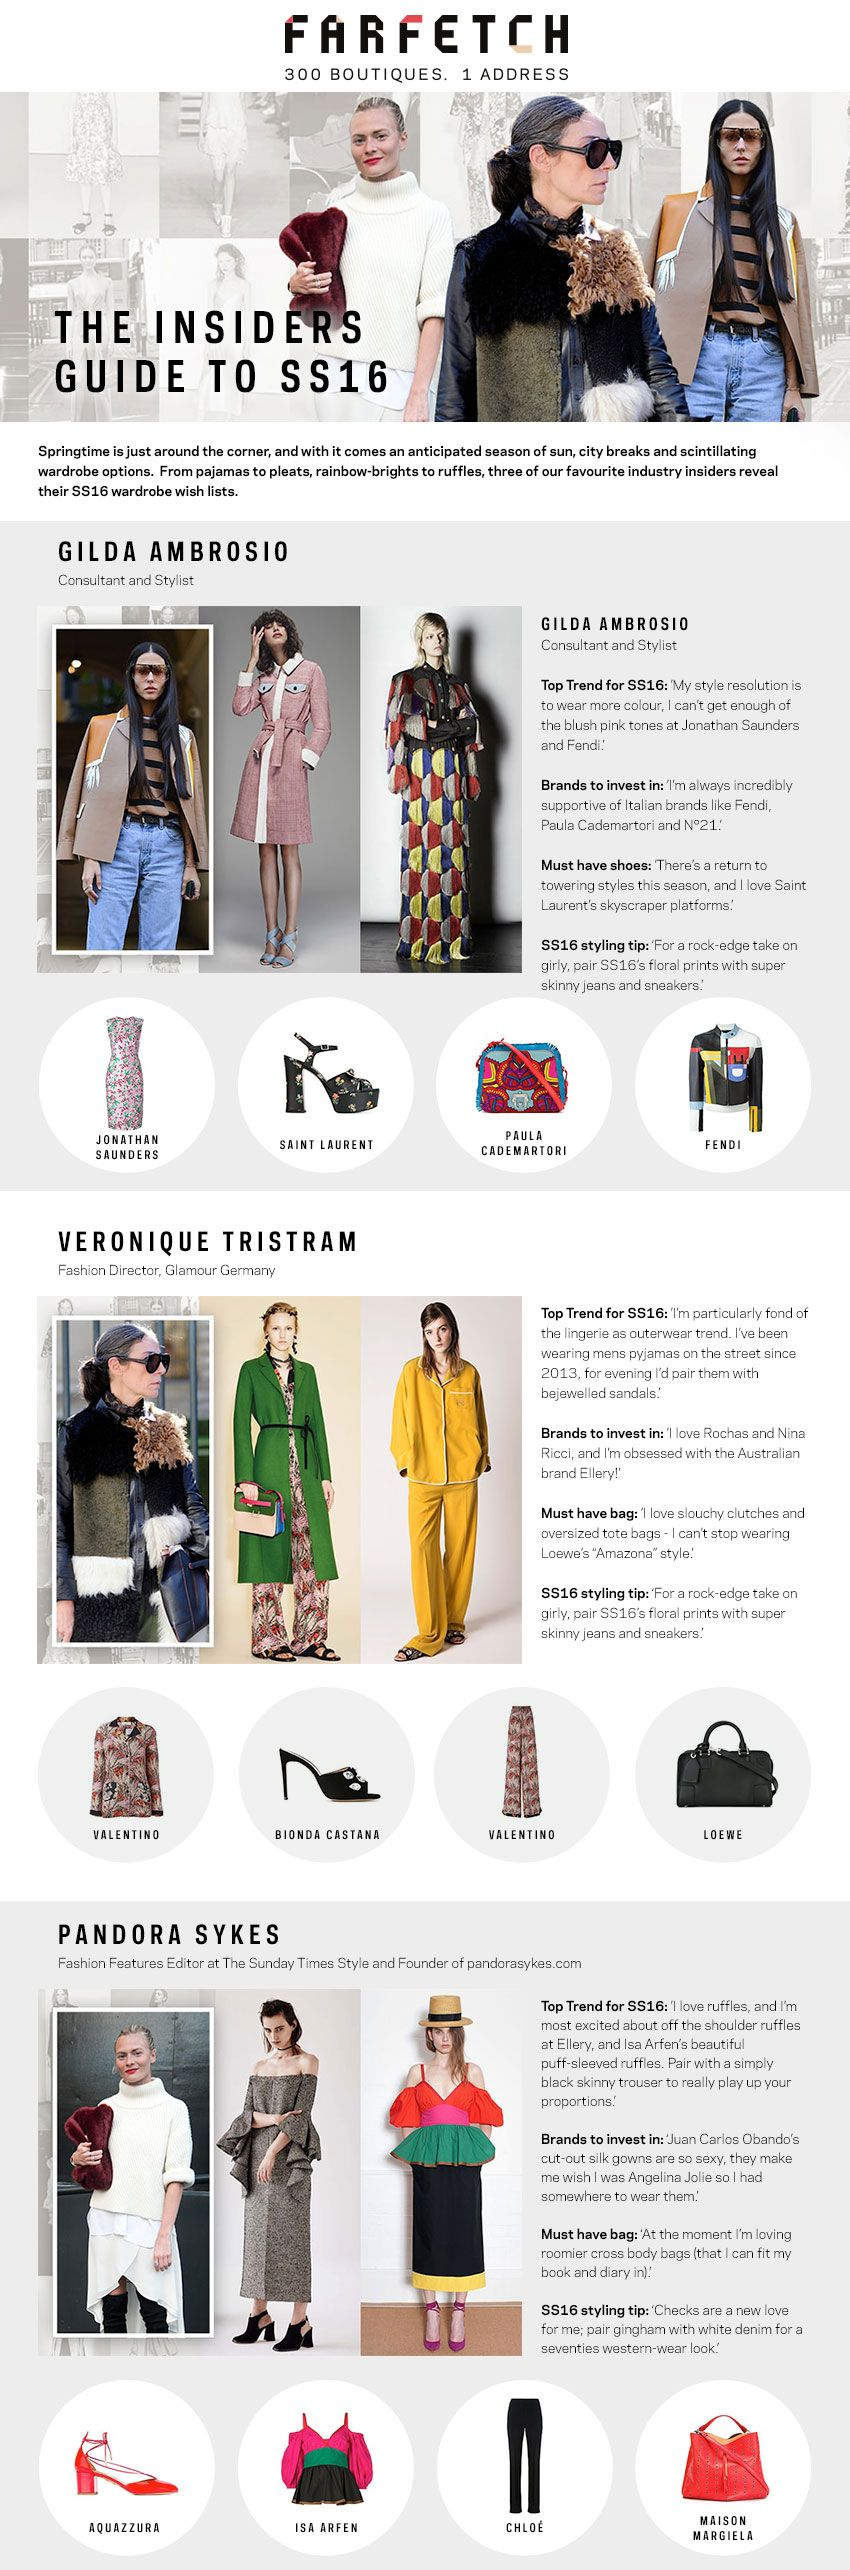 Farfetch S/S 16 Trends #Infographic